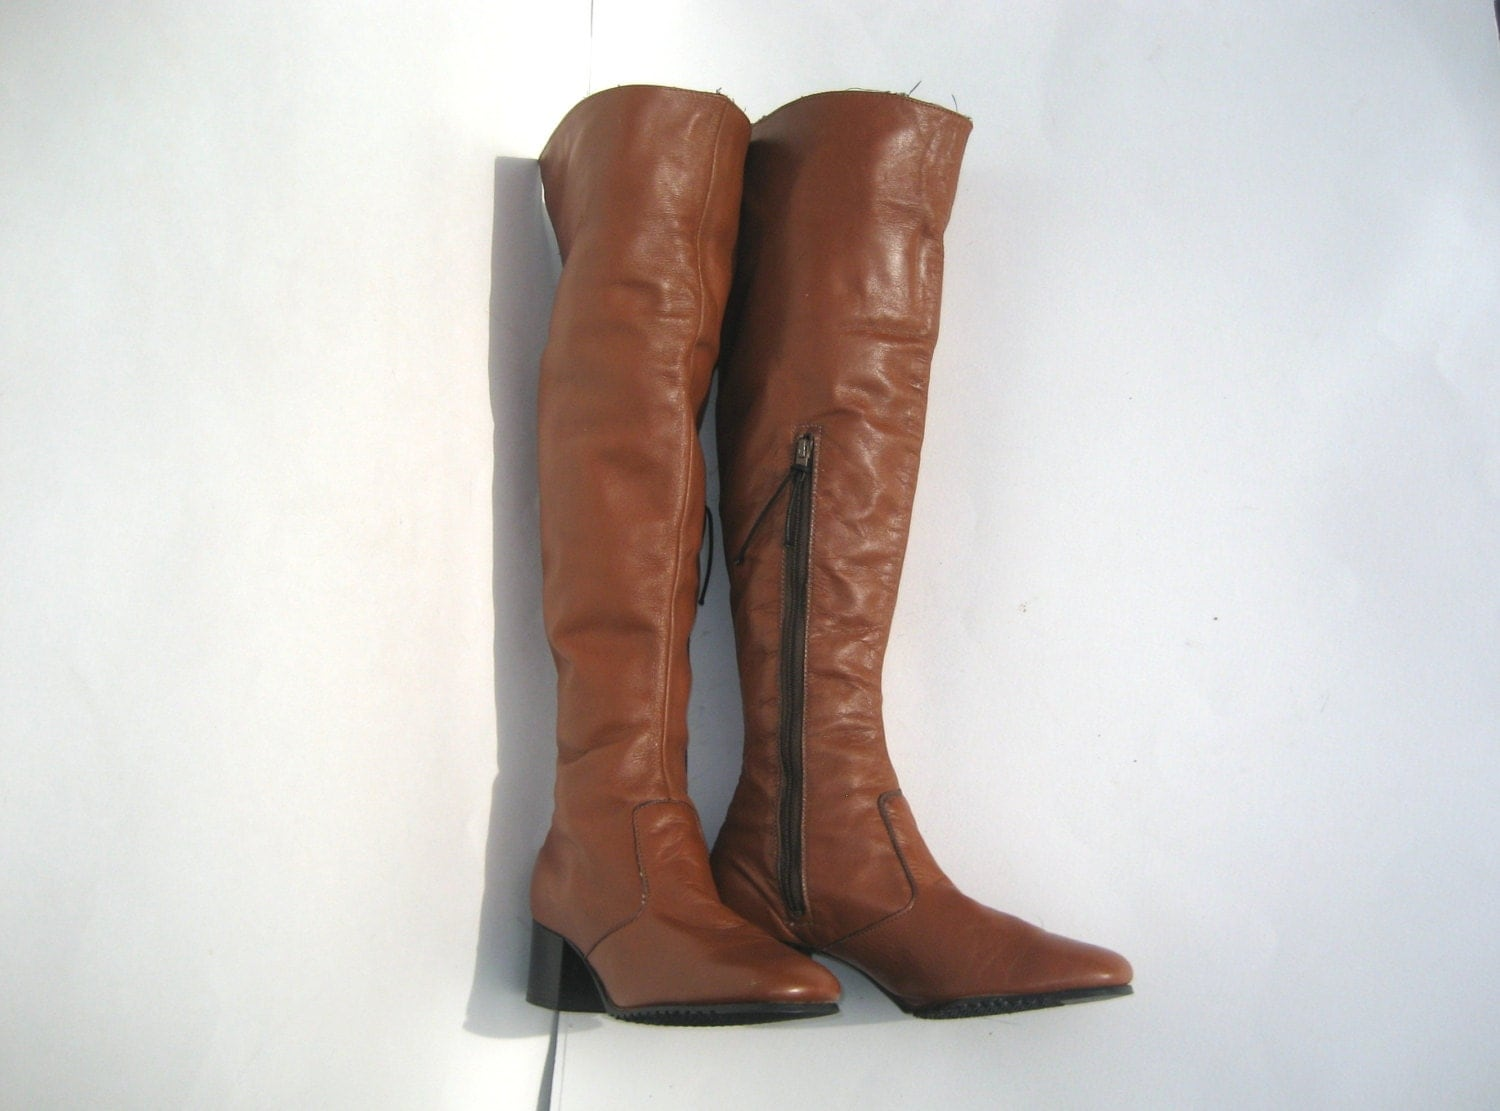 1960s brown leather the knee boots vintage go go boots